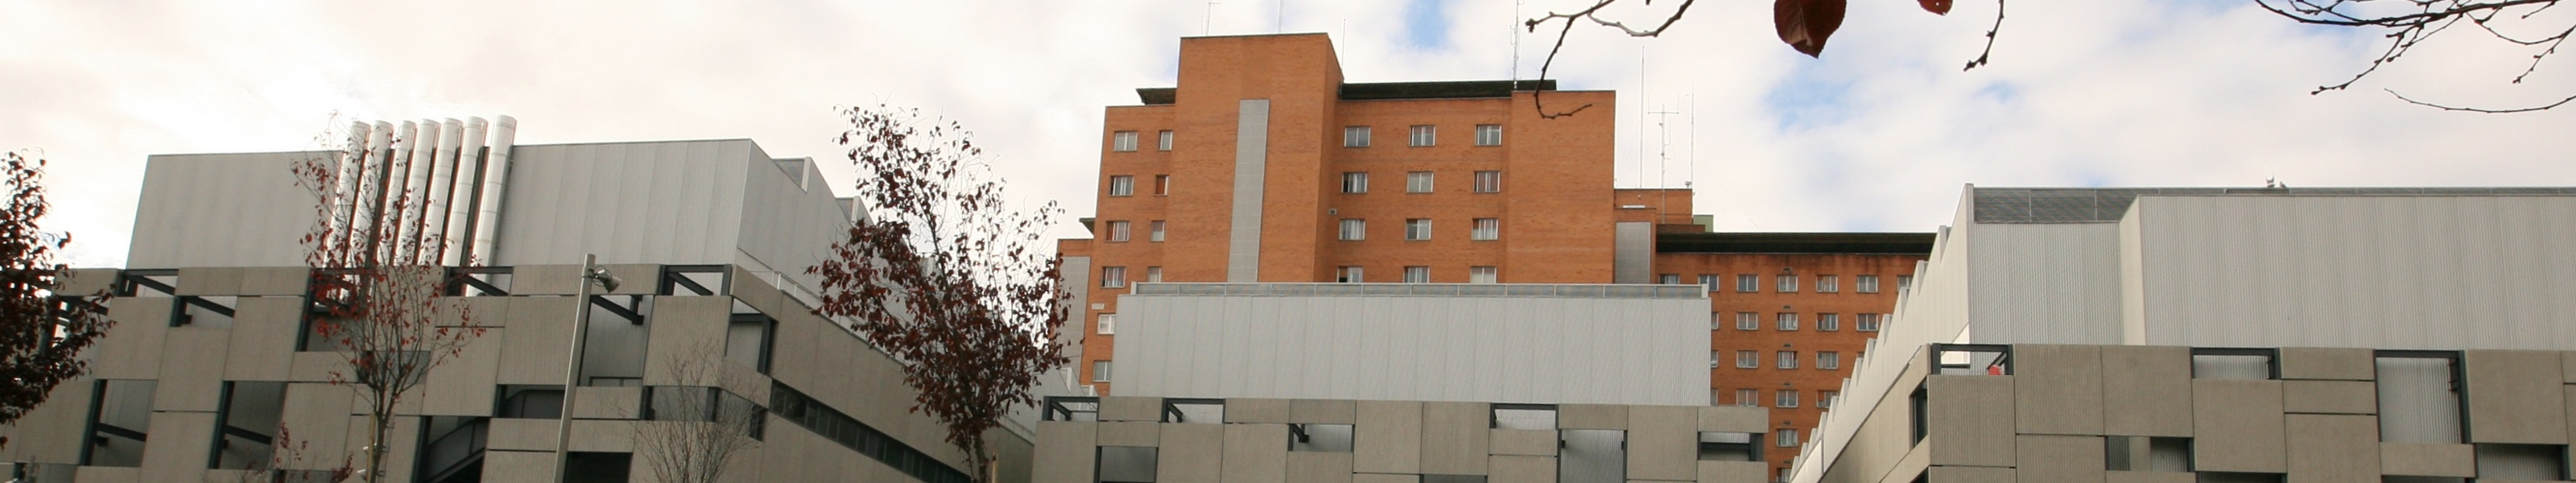 Hospital Clínico Universitario de Valladolid 2